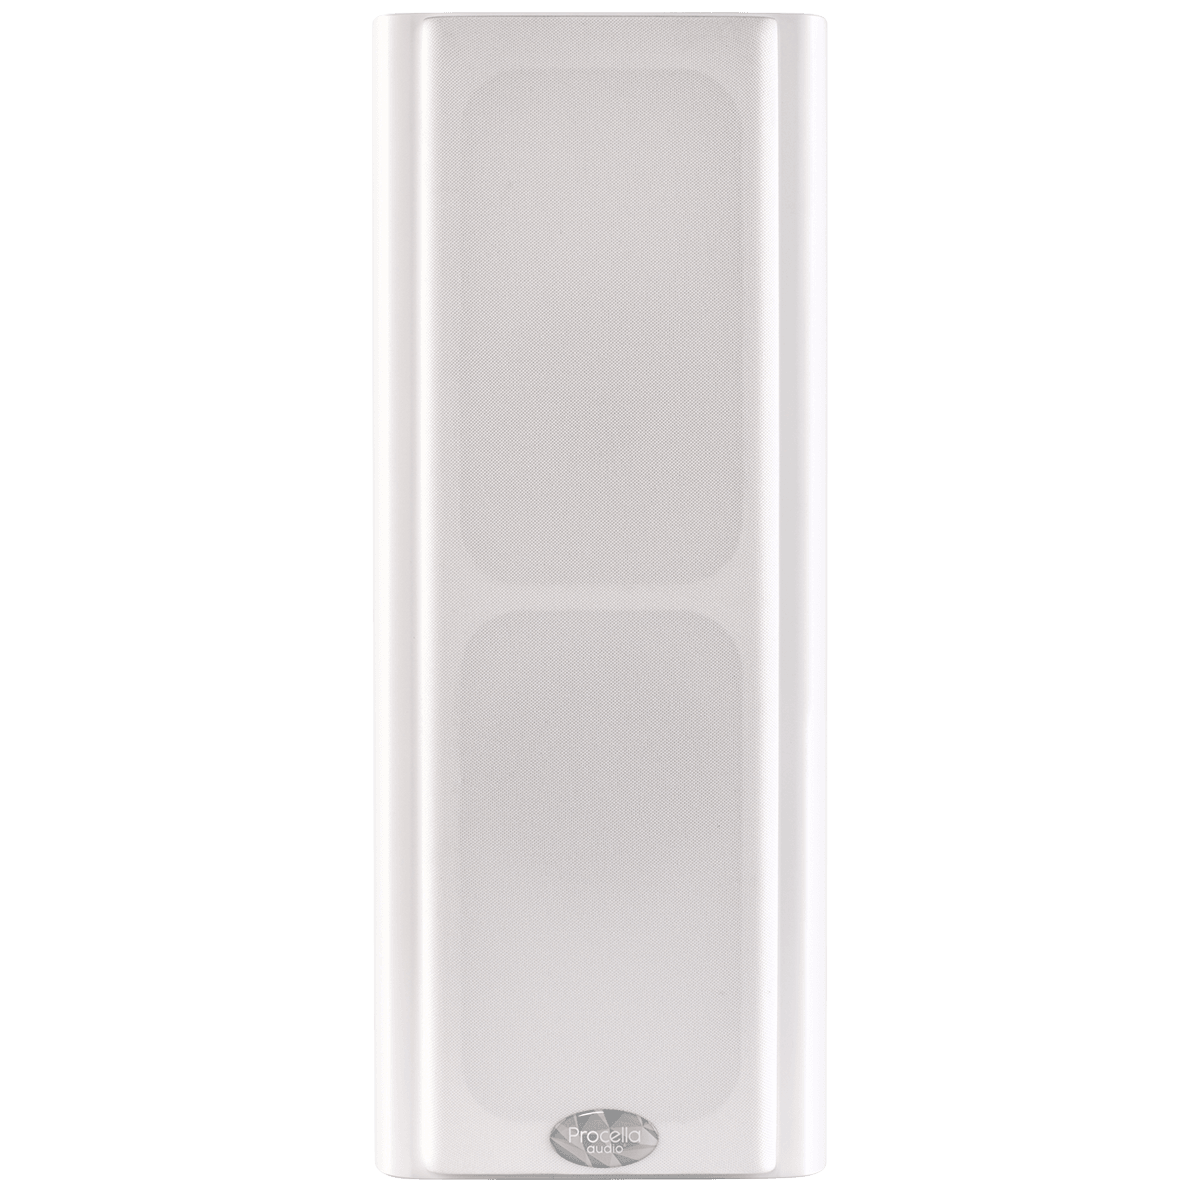 Procella P5V white front view with cover 1200×1200